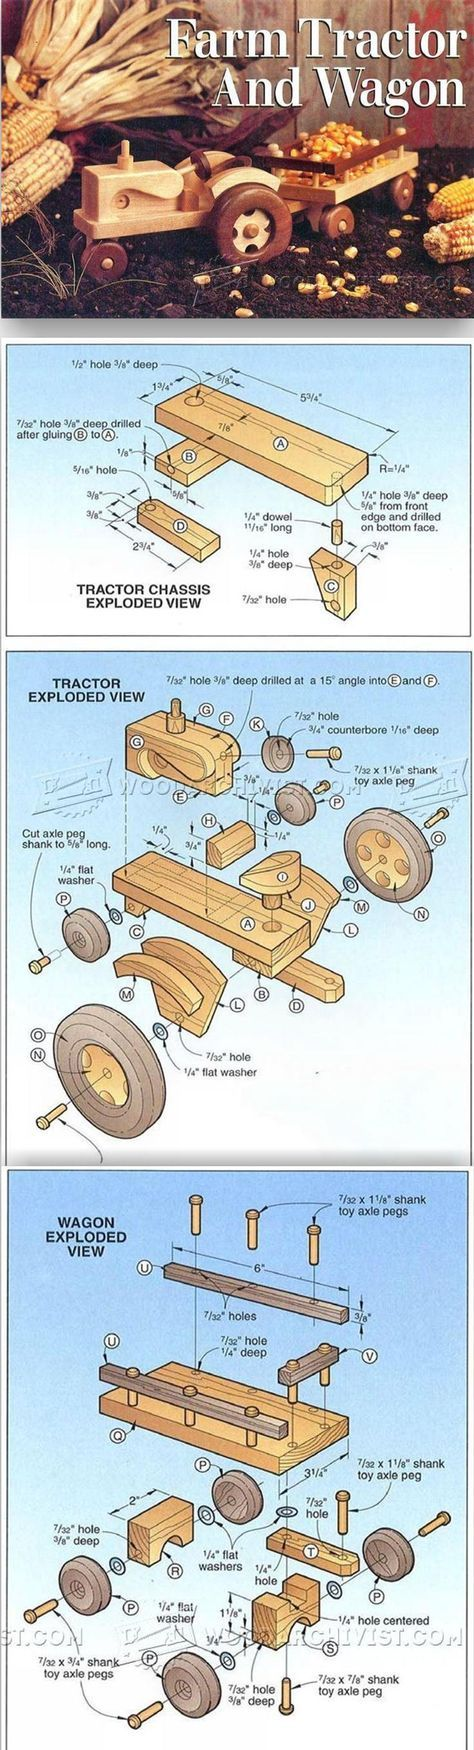 ZzzzzzzzzzzzzzzzzzzzWooden Tractor Plans - Wooden Toy Plans and Projects   WoodArchivist.com